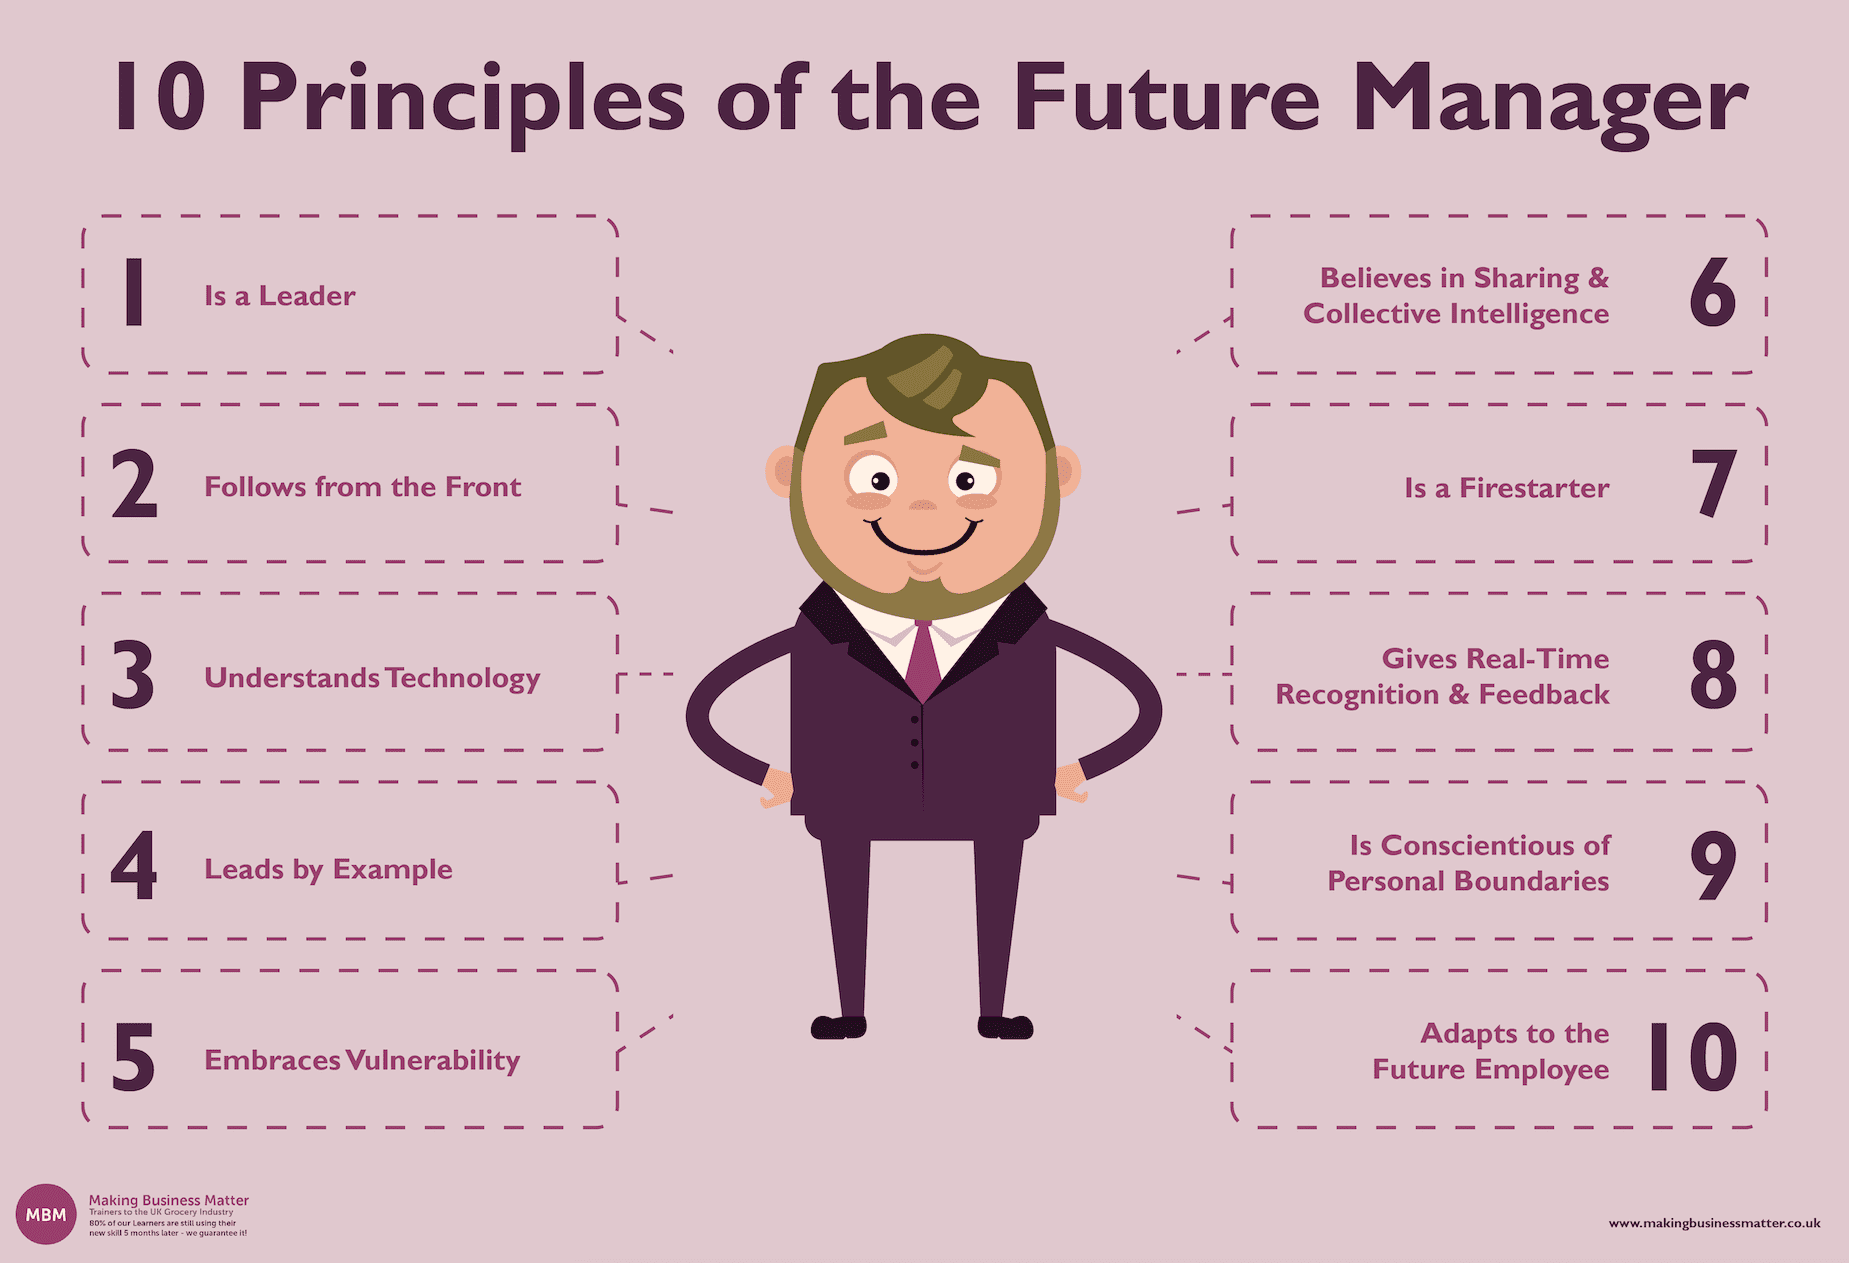 List of 10 Principles of the Future Manager